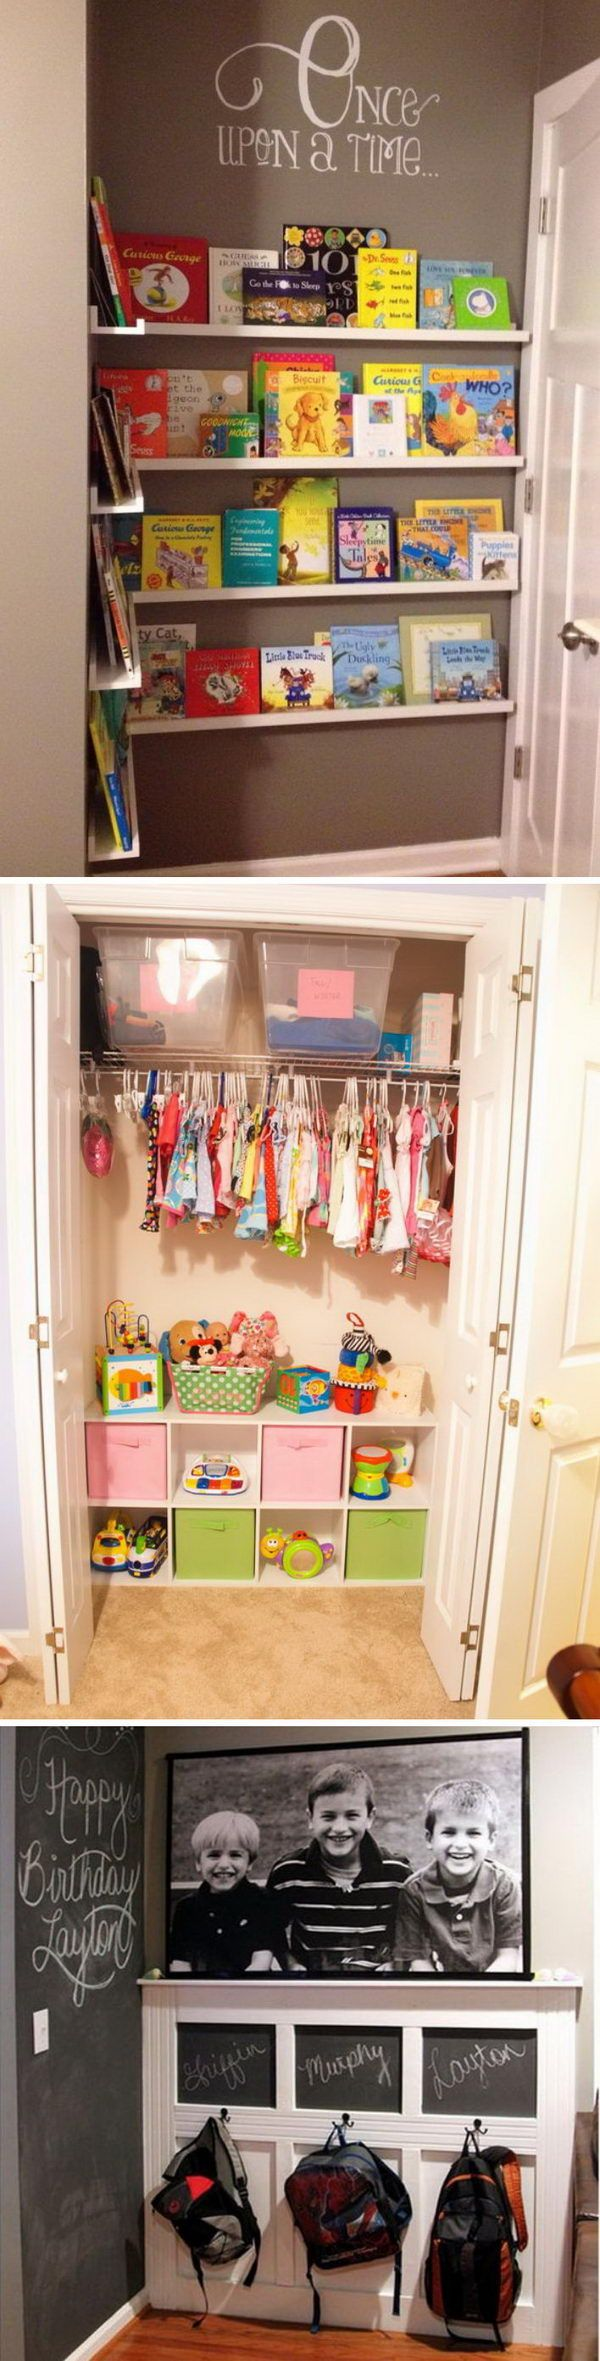 Storage For Kids Room Best 25 Kid Room Storage Ideas On Pinterest  Kids Shelf Toy